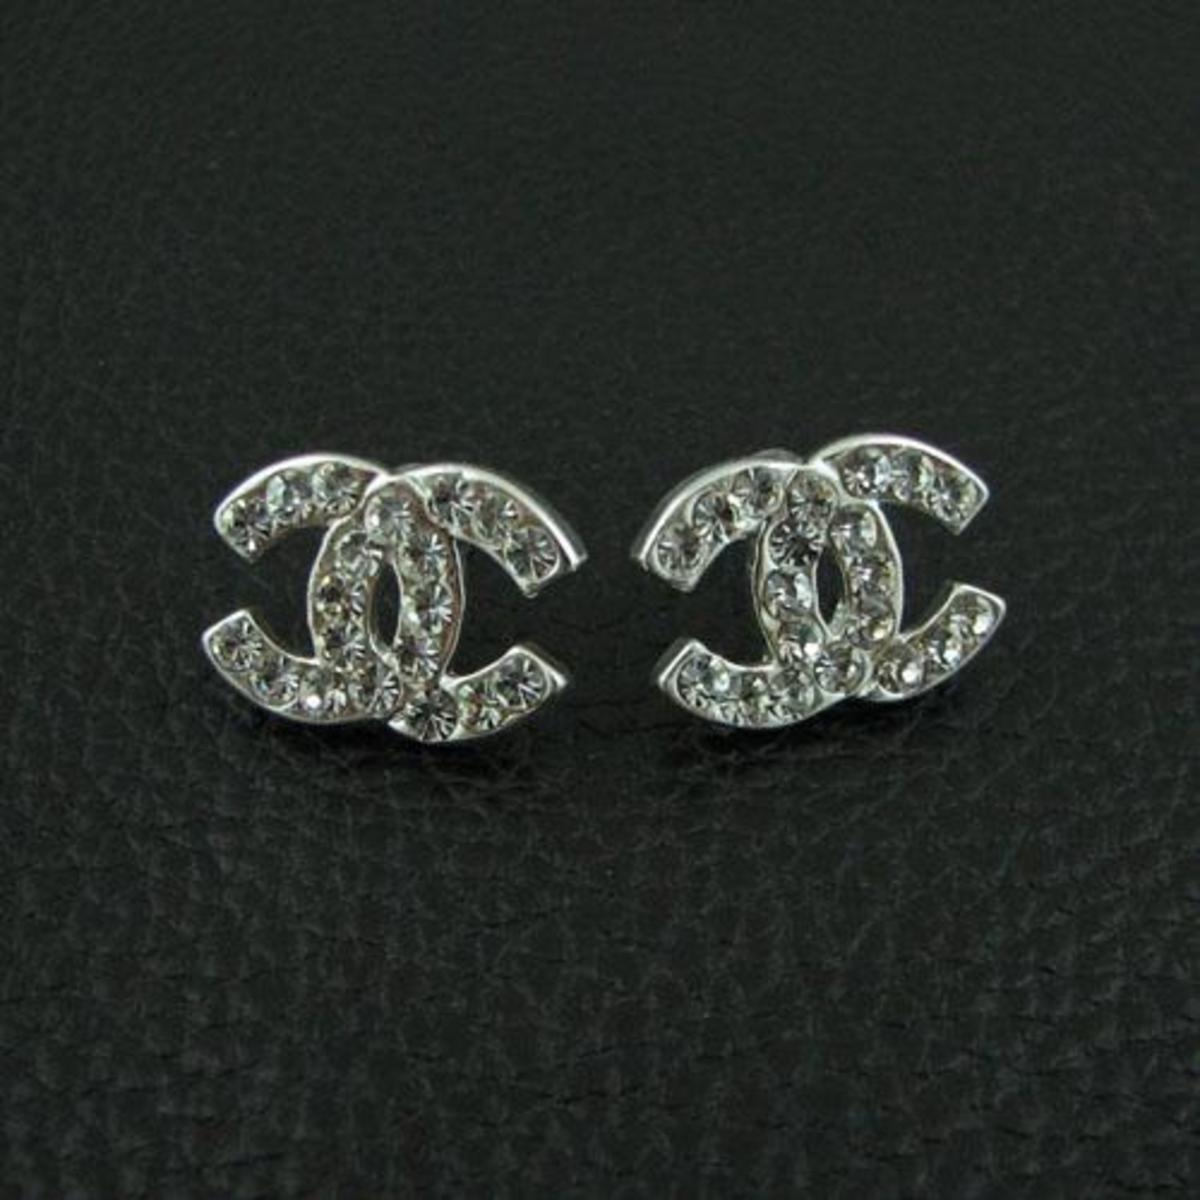 example of faux Chanel earrings with the classic CC monogram